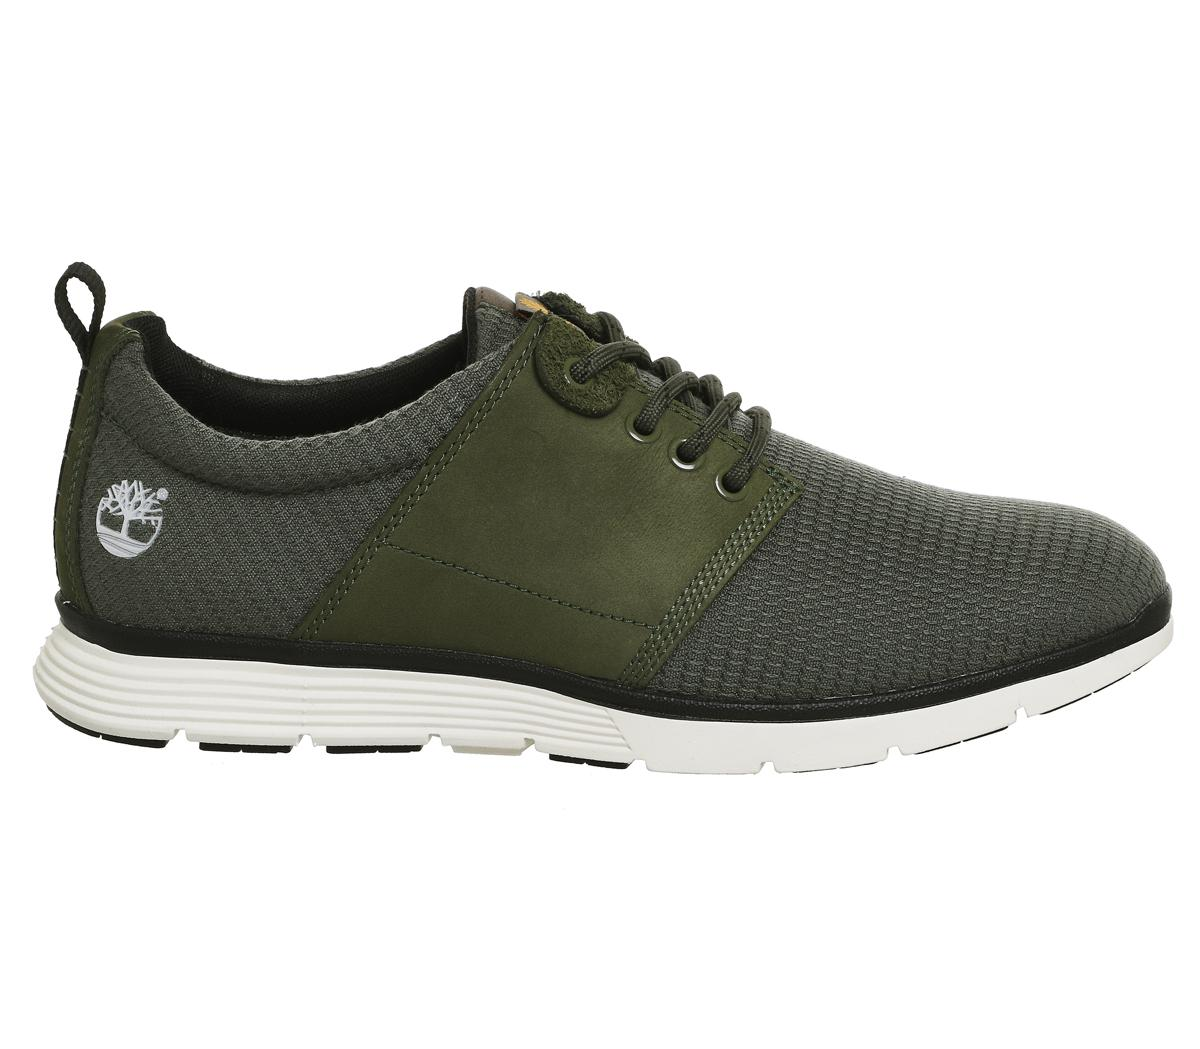 Timberland Leather Killington Oxford In Sage Green For